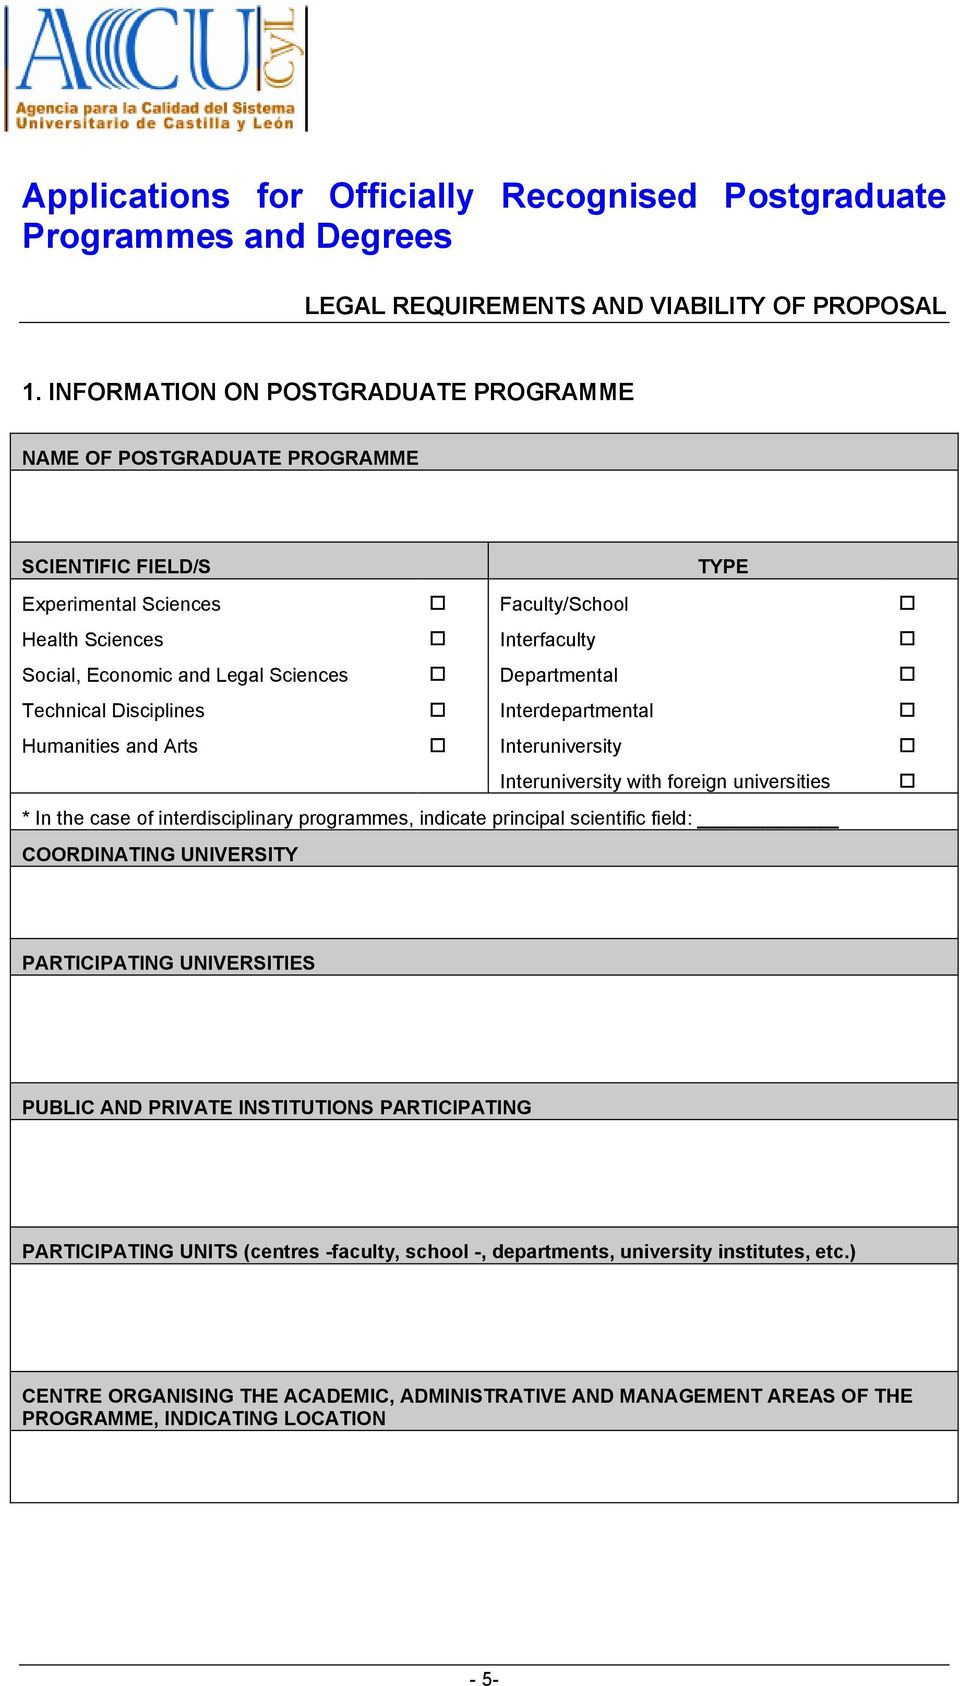 Departmental Technical Disciplines Interdepartmental Humanities and Arts Interuniversity Interuniversity with foreign universities * In the case of interdisciplinary programmes, indicate principal